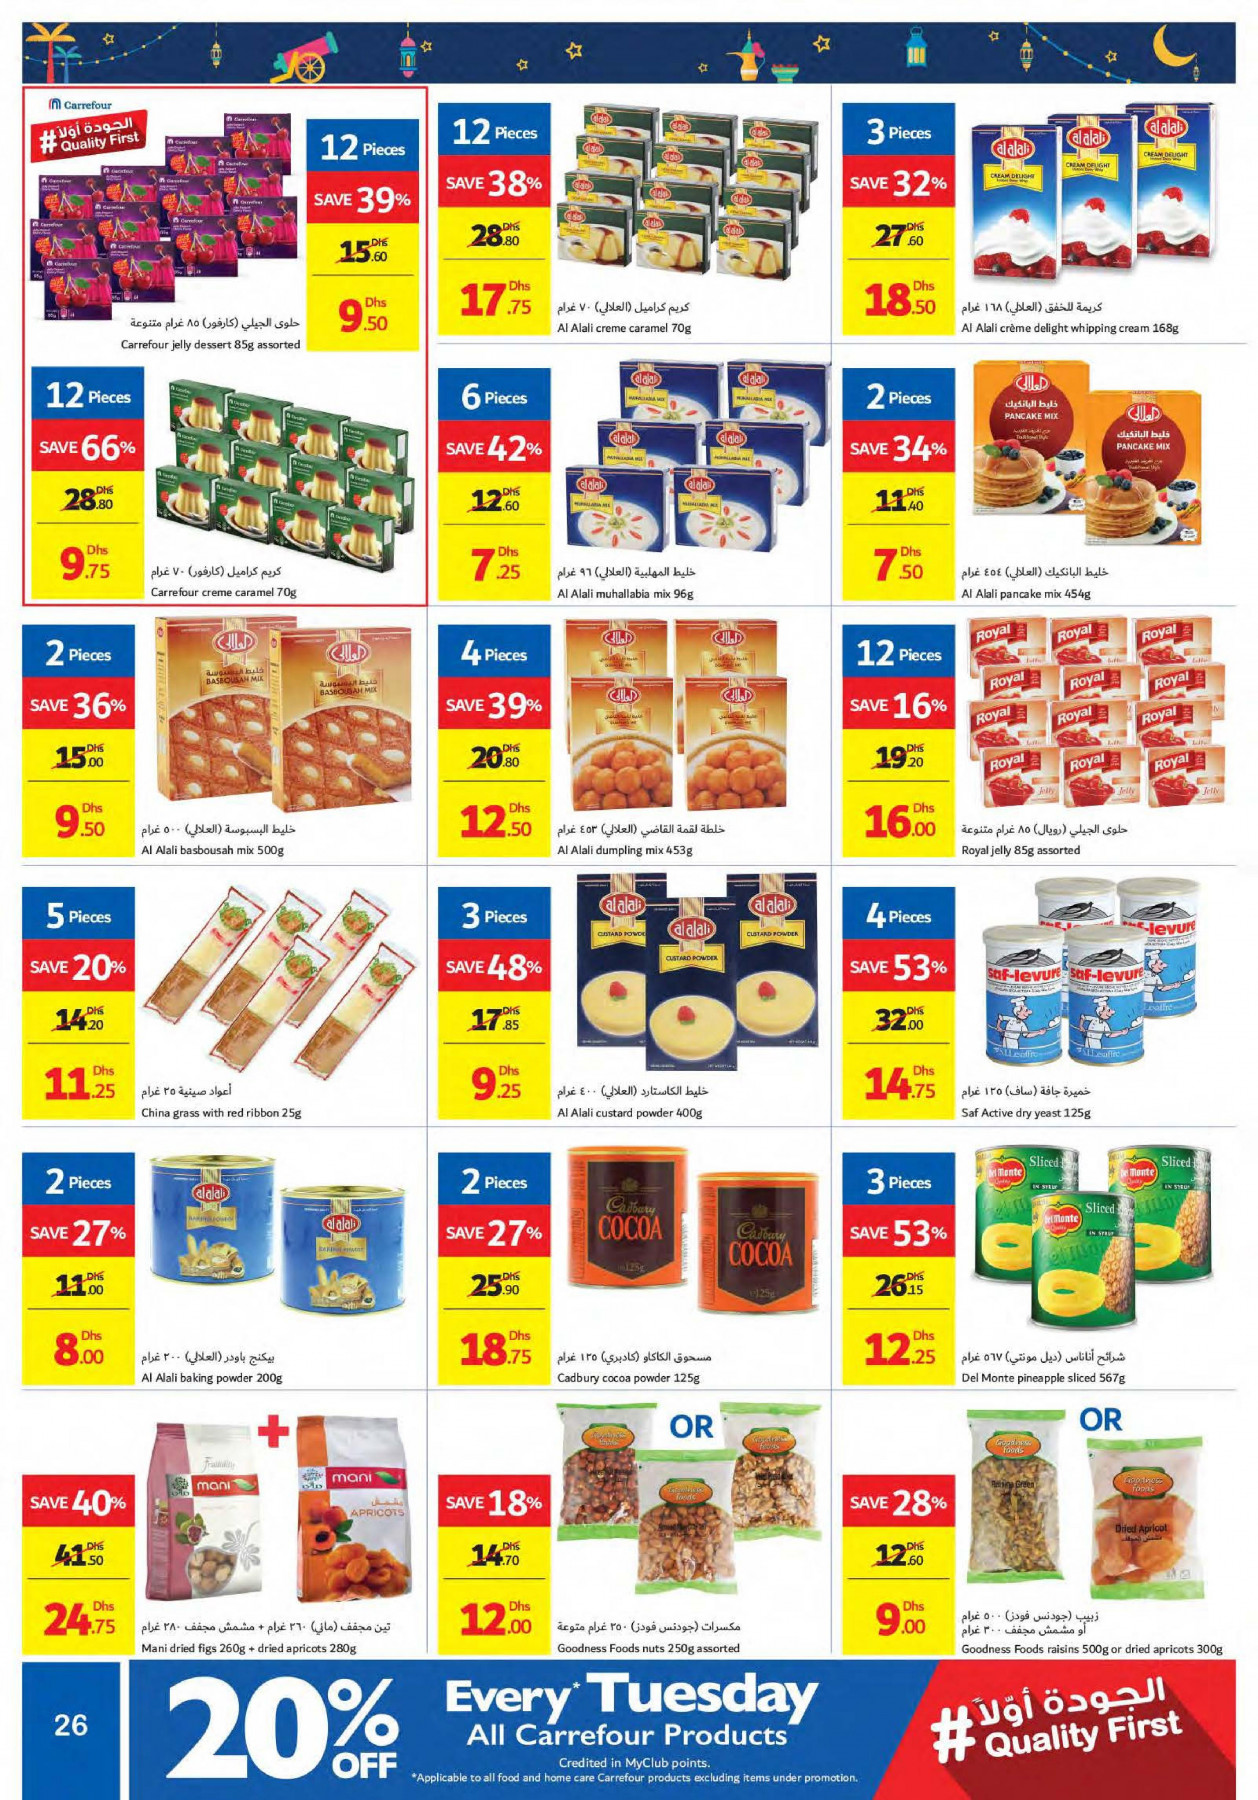 Ramadan Kareem offers from Carrefour until 8th May